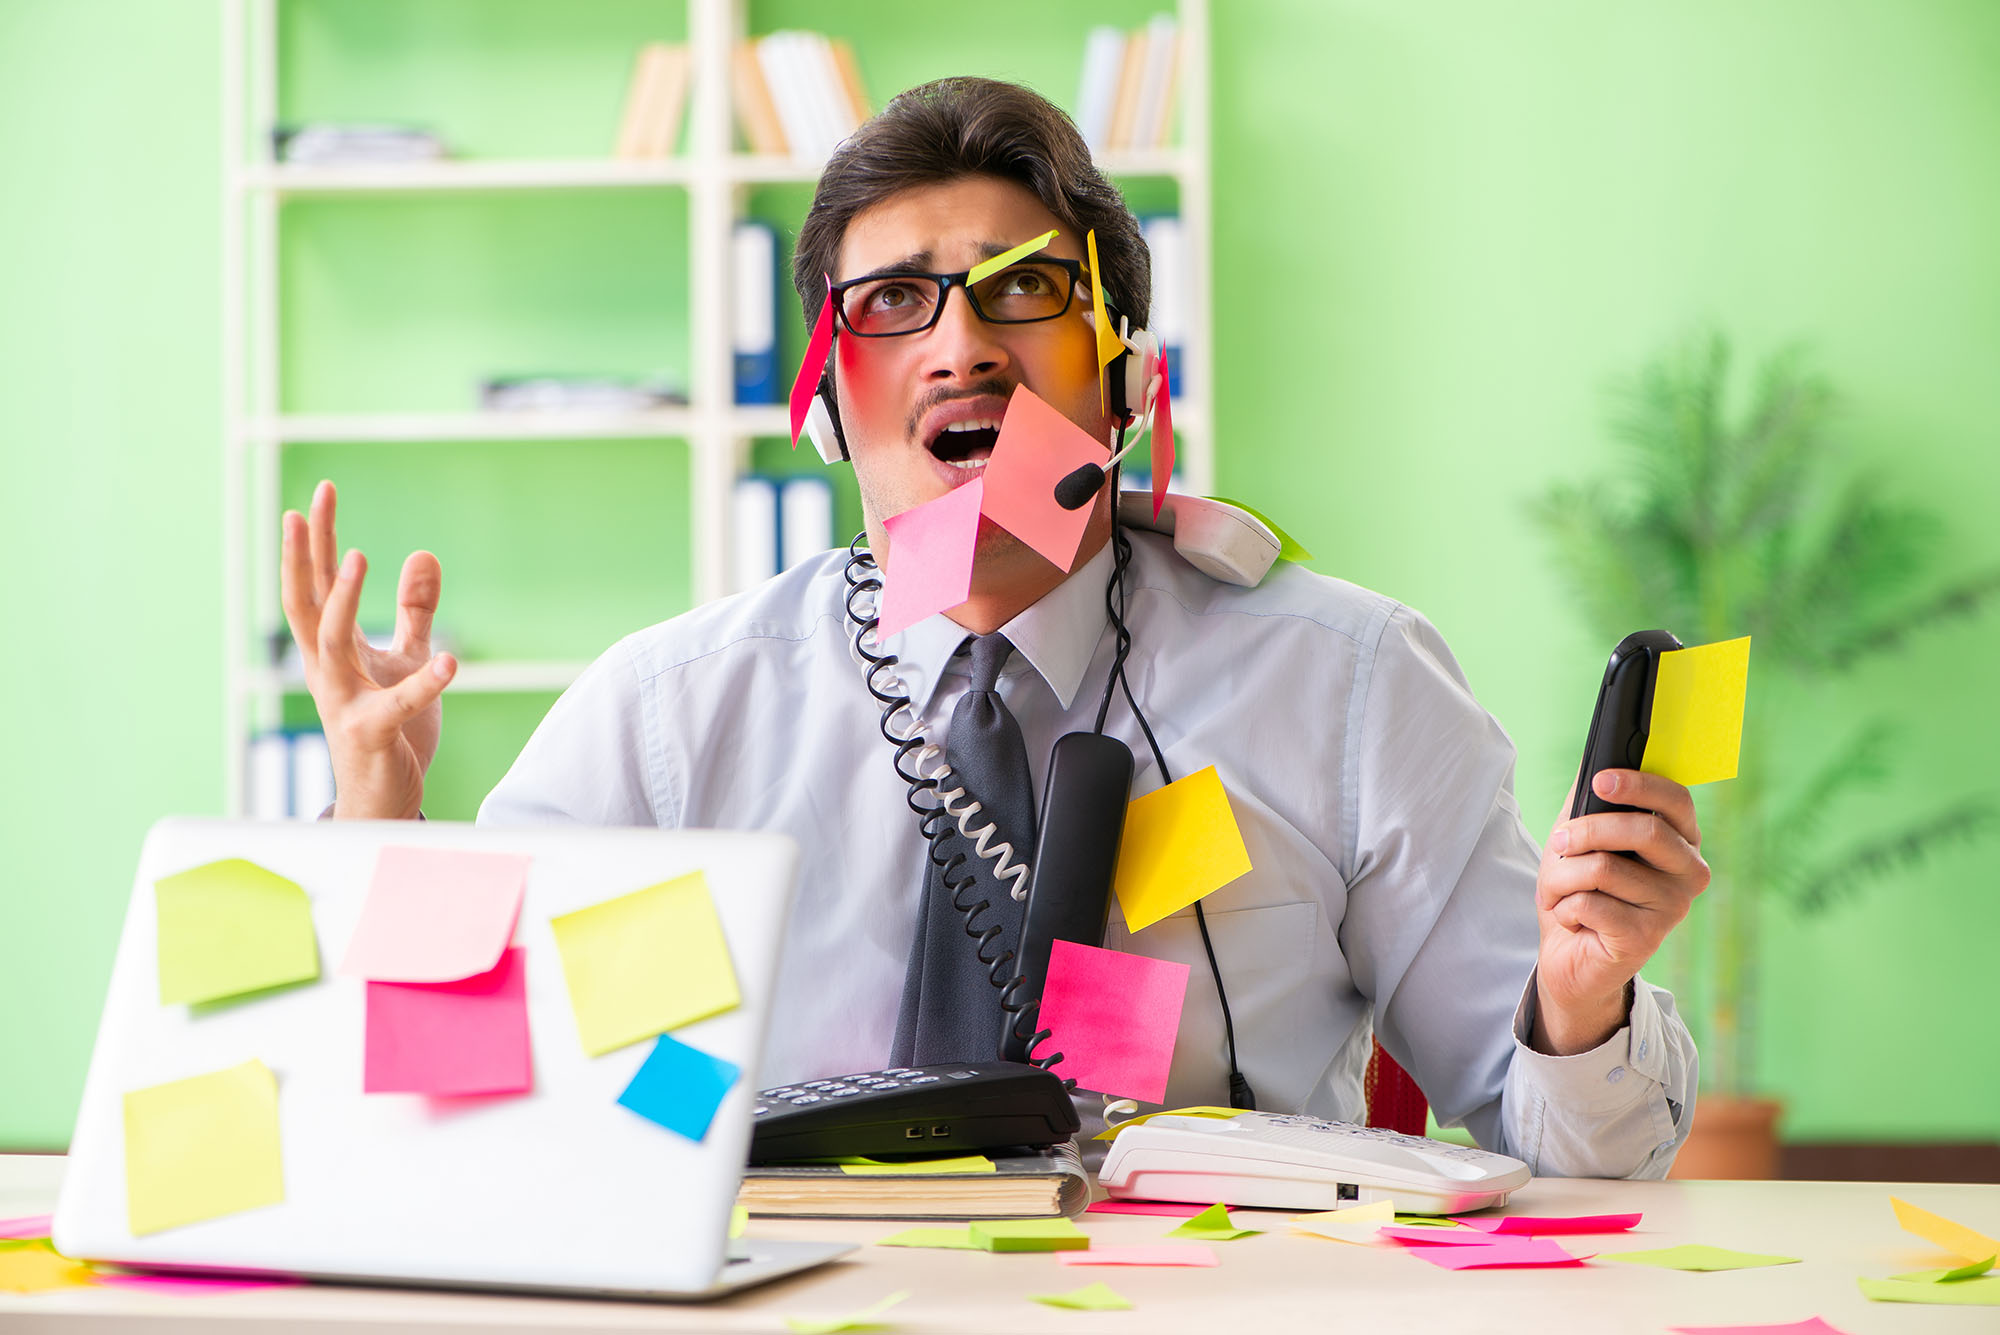 Man at IT service desk with post it notes and phones